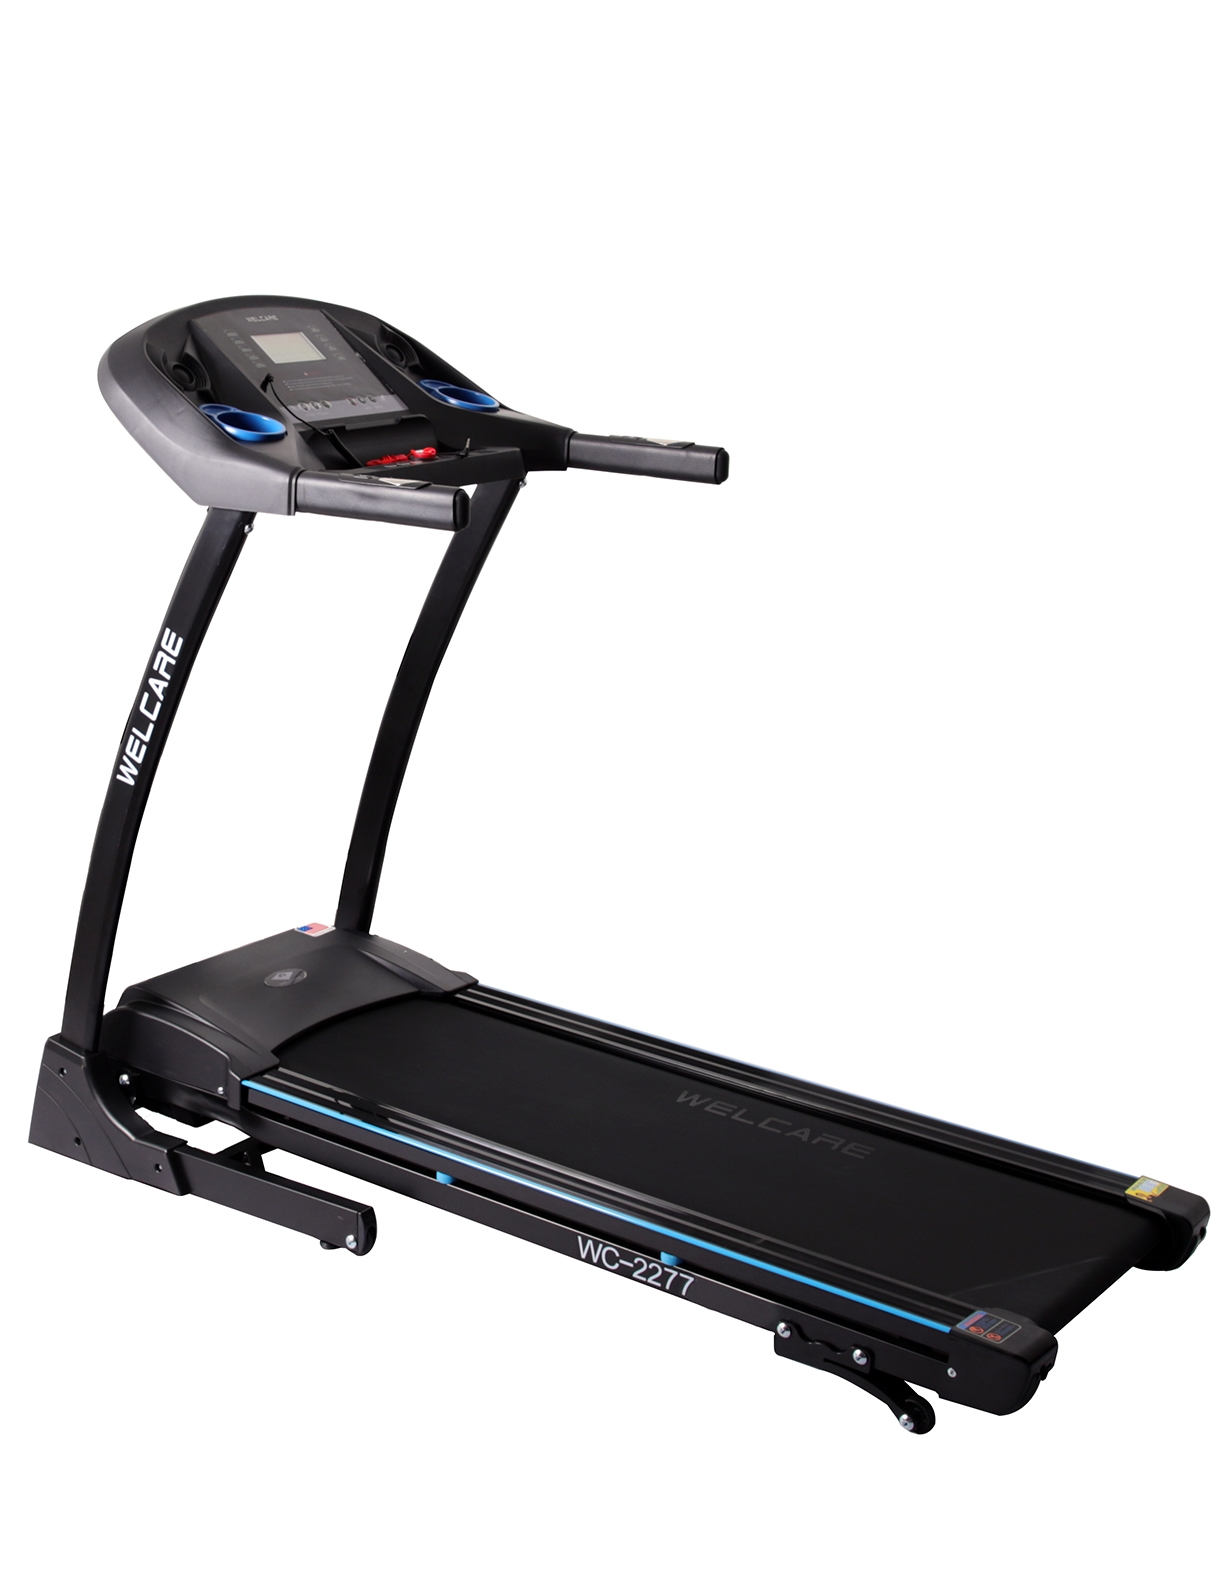 WC 2277 MOTORIZED TREADMILL